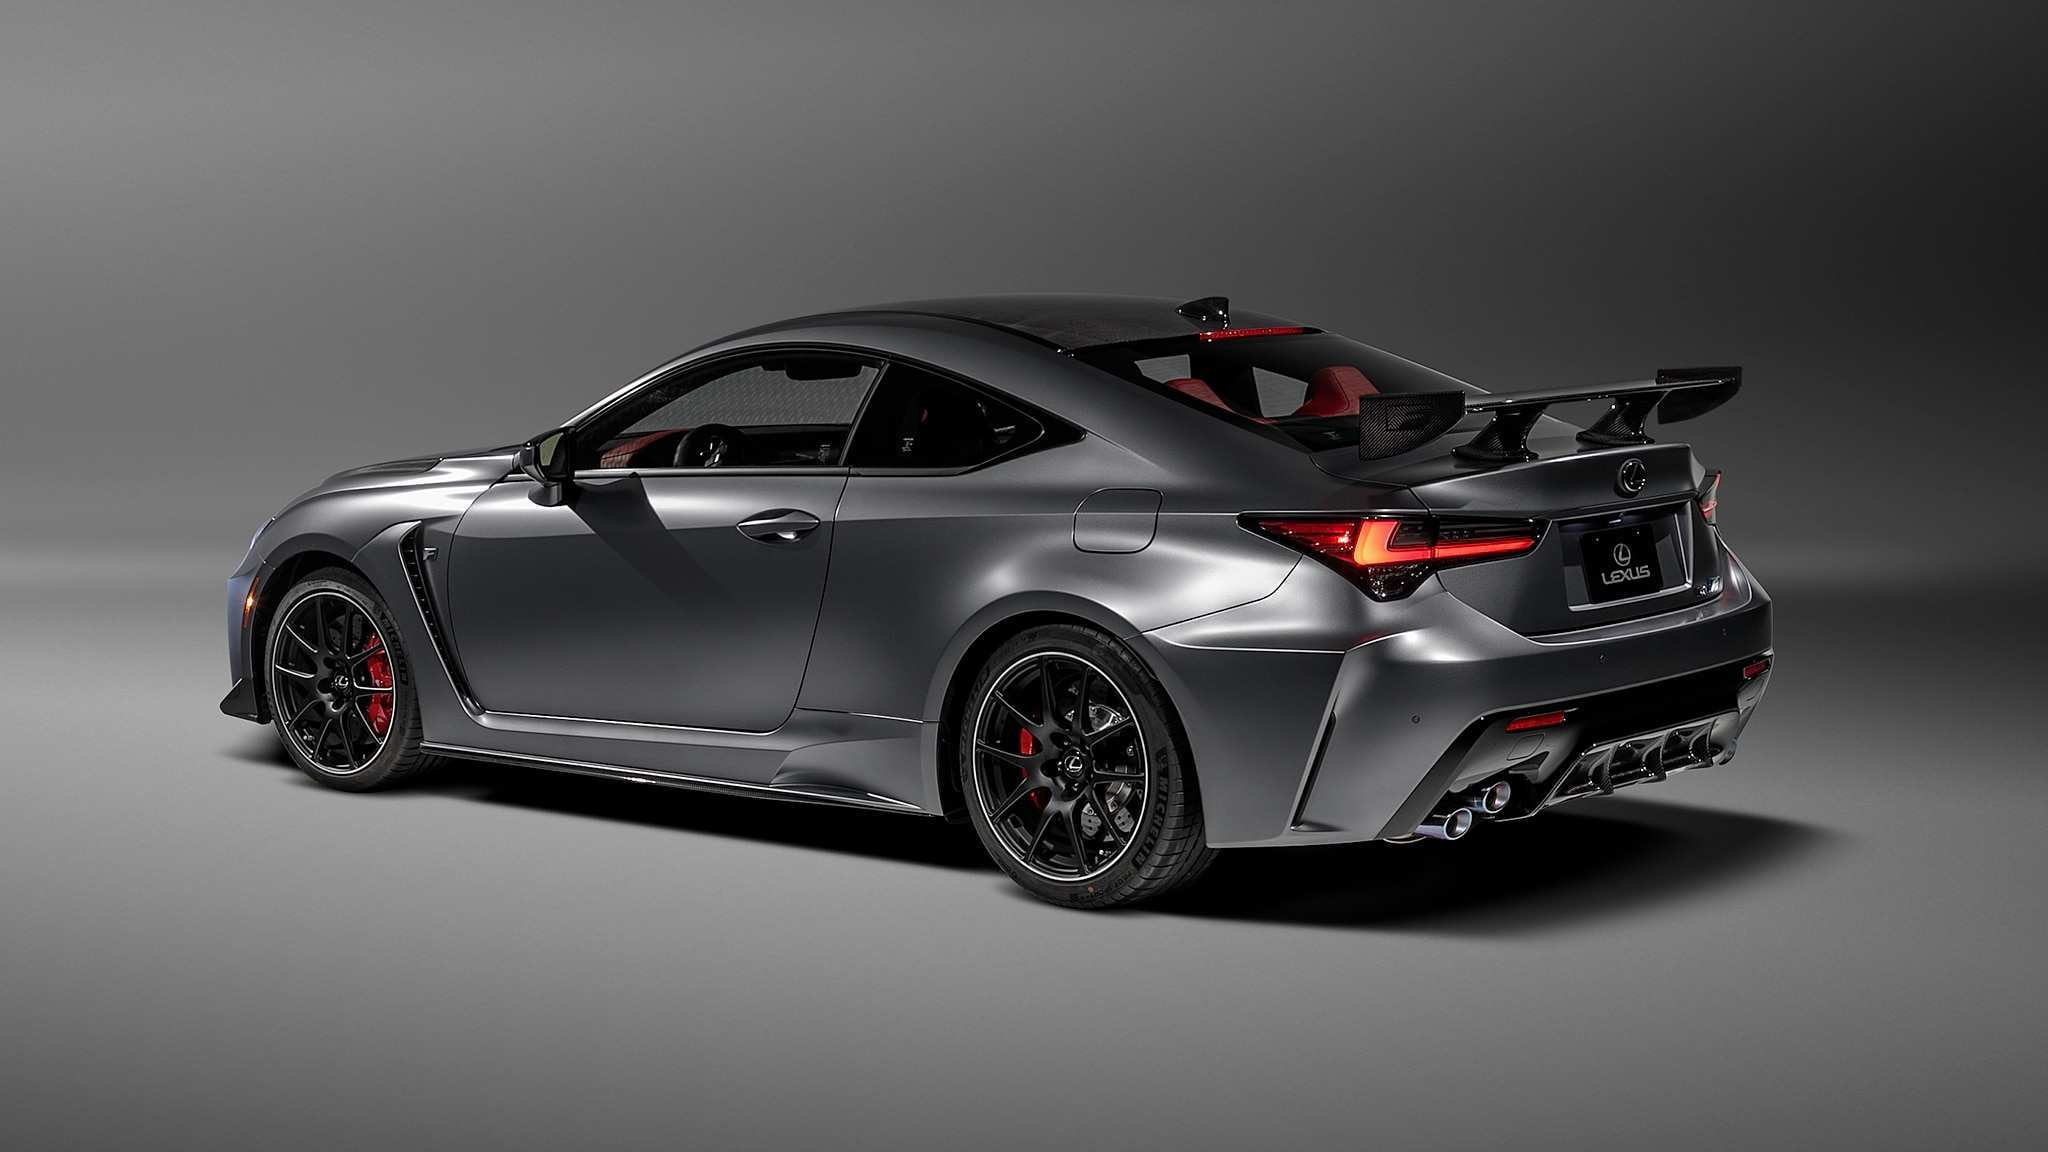 79 Gallery of 2020 Lexus Rc F Track Edition Specs Overview with 2020 Lexus Rc F Track Edition Specs